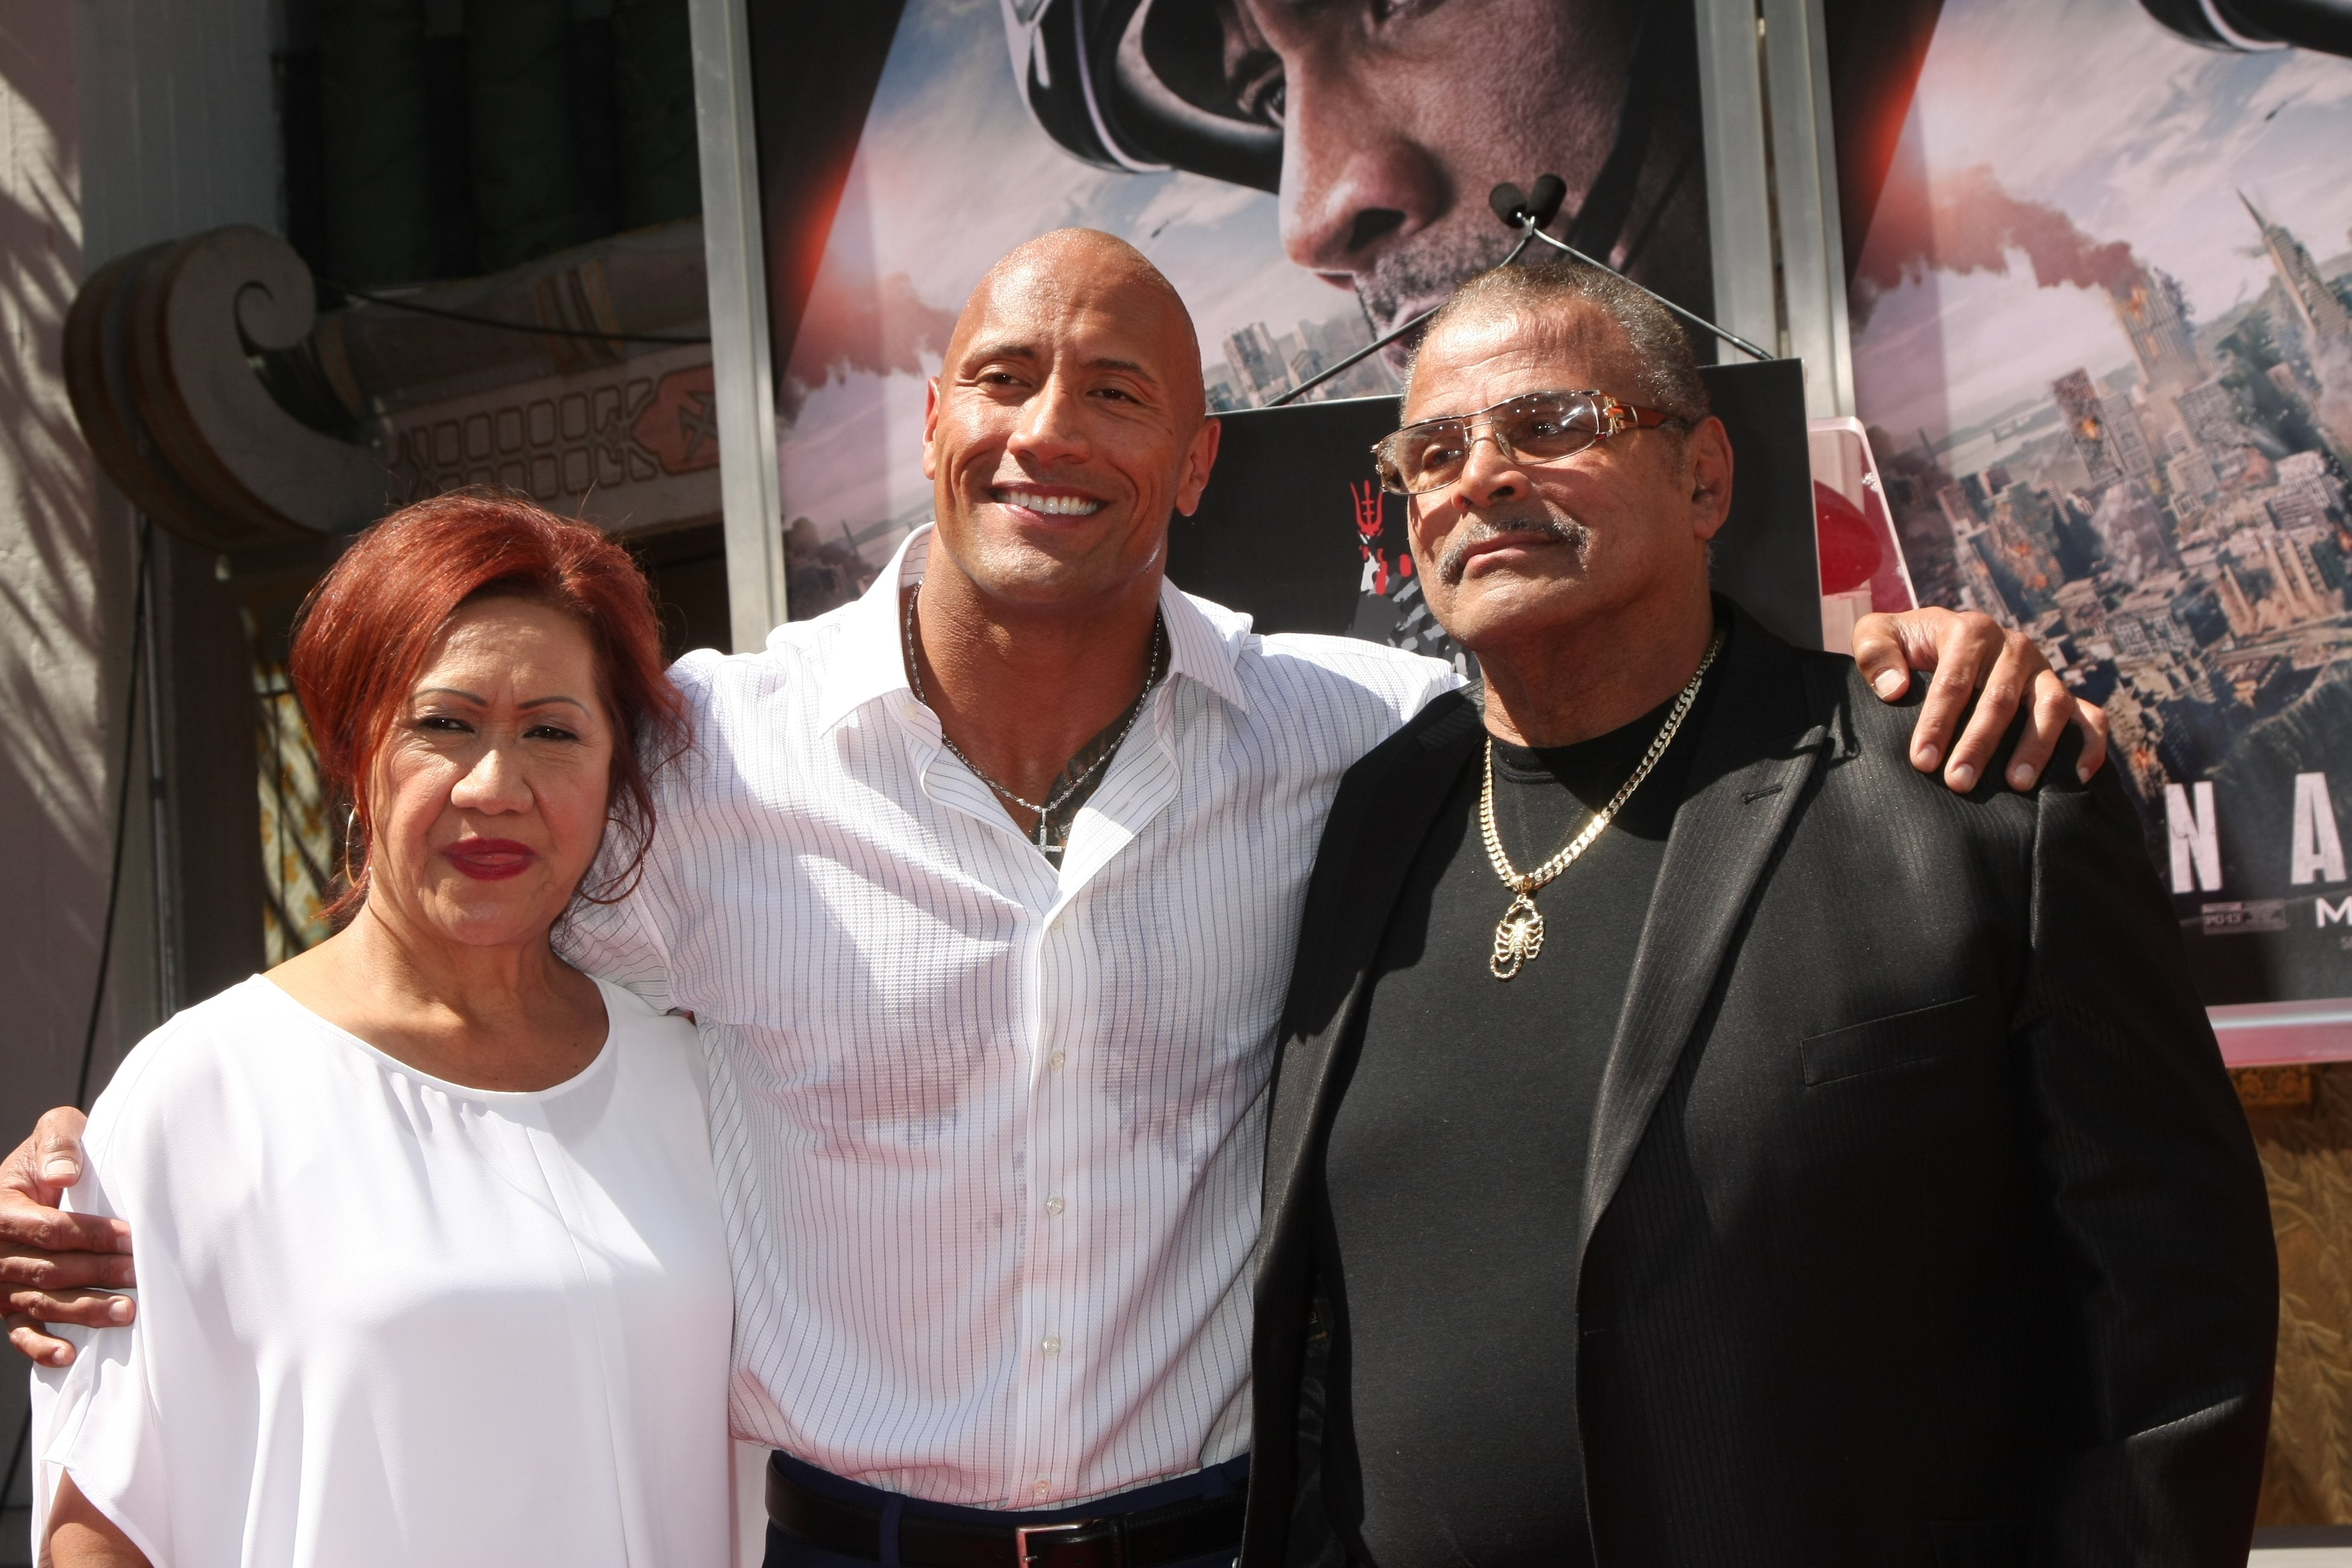 Dwayne Johnson pictured with his mom, Ata Johnson, and dad, Rocky Johnson, at his Hand and Foot Print Ceremony at the TCL Chinese Theater, 2015. California | Photo: Shutterstock